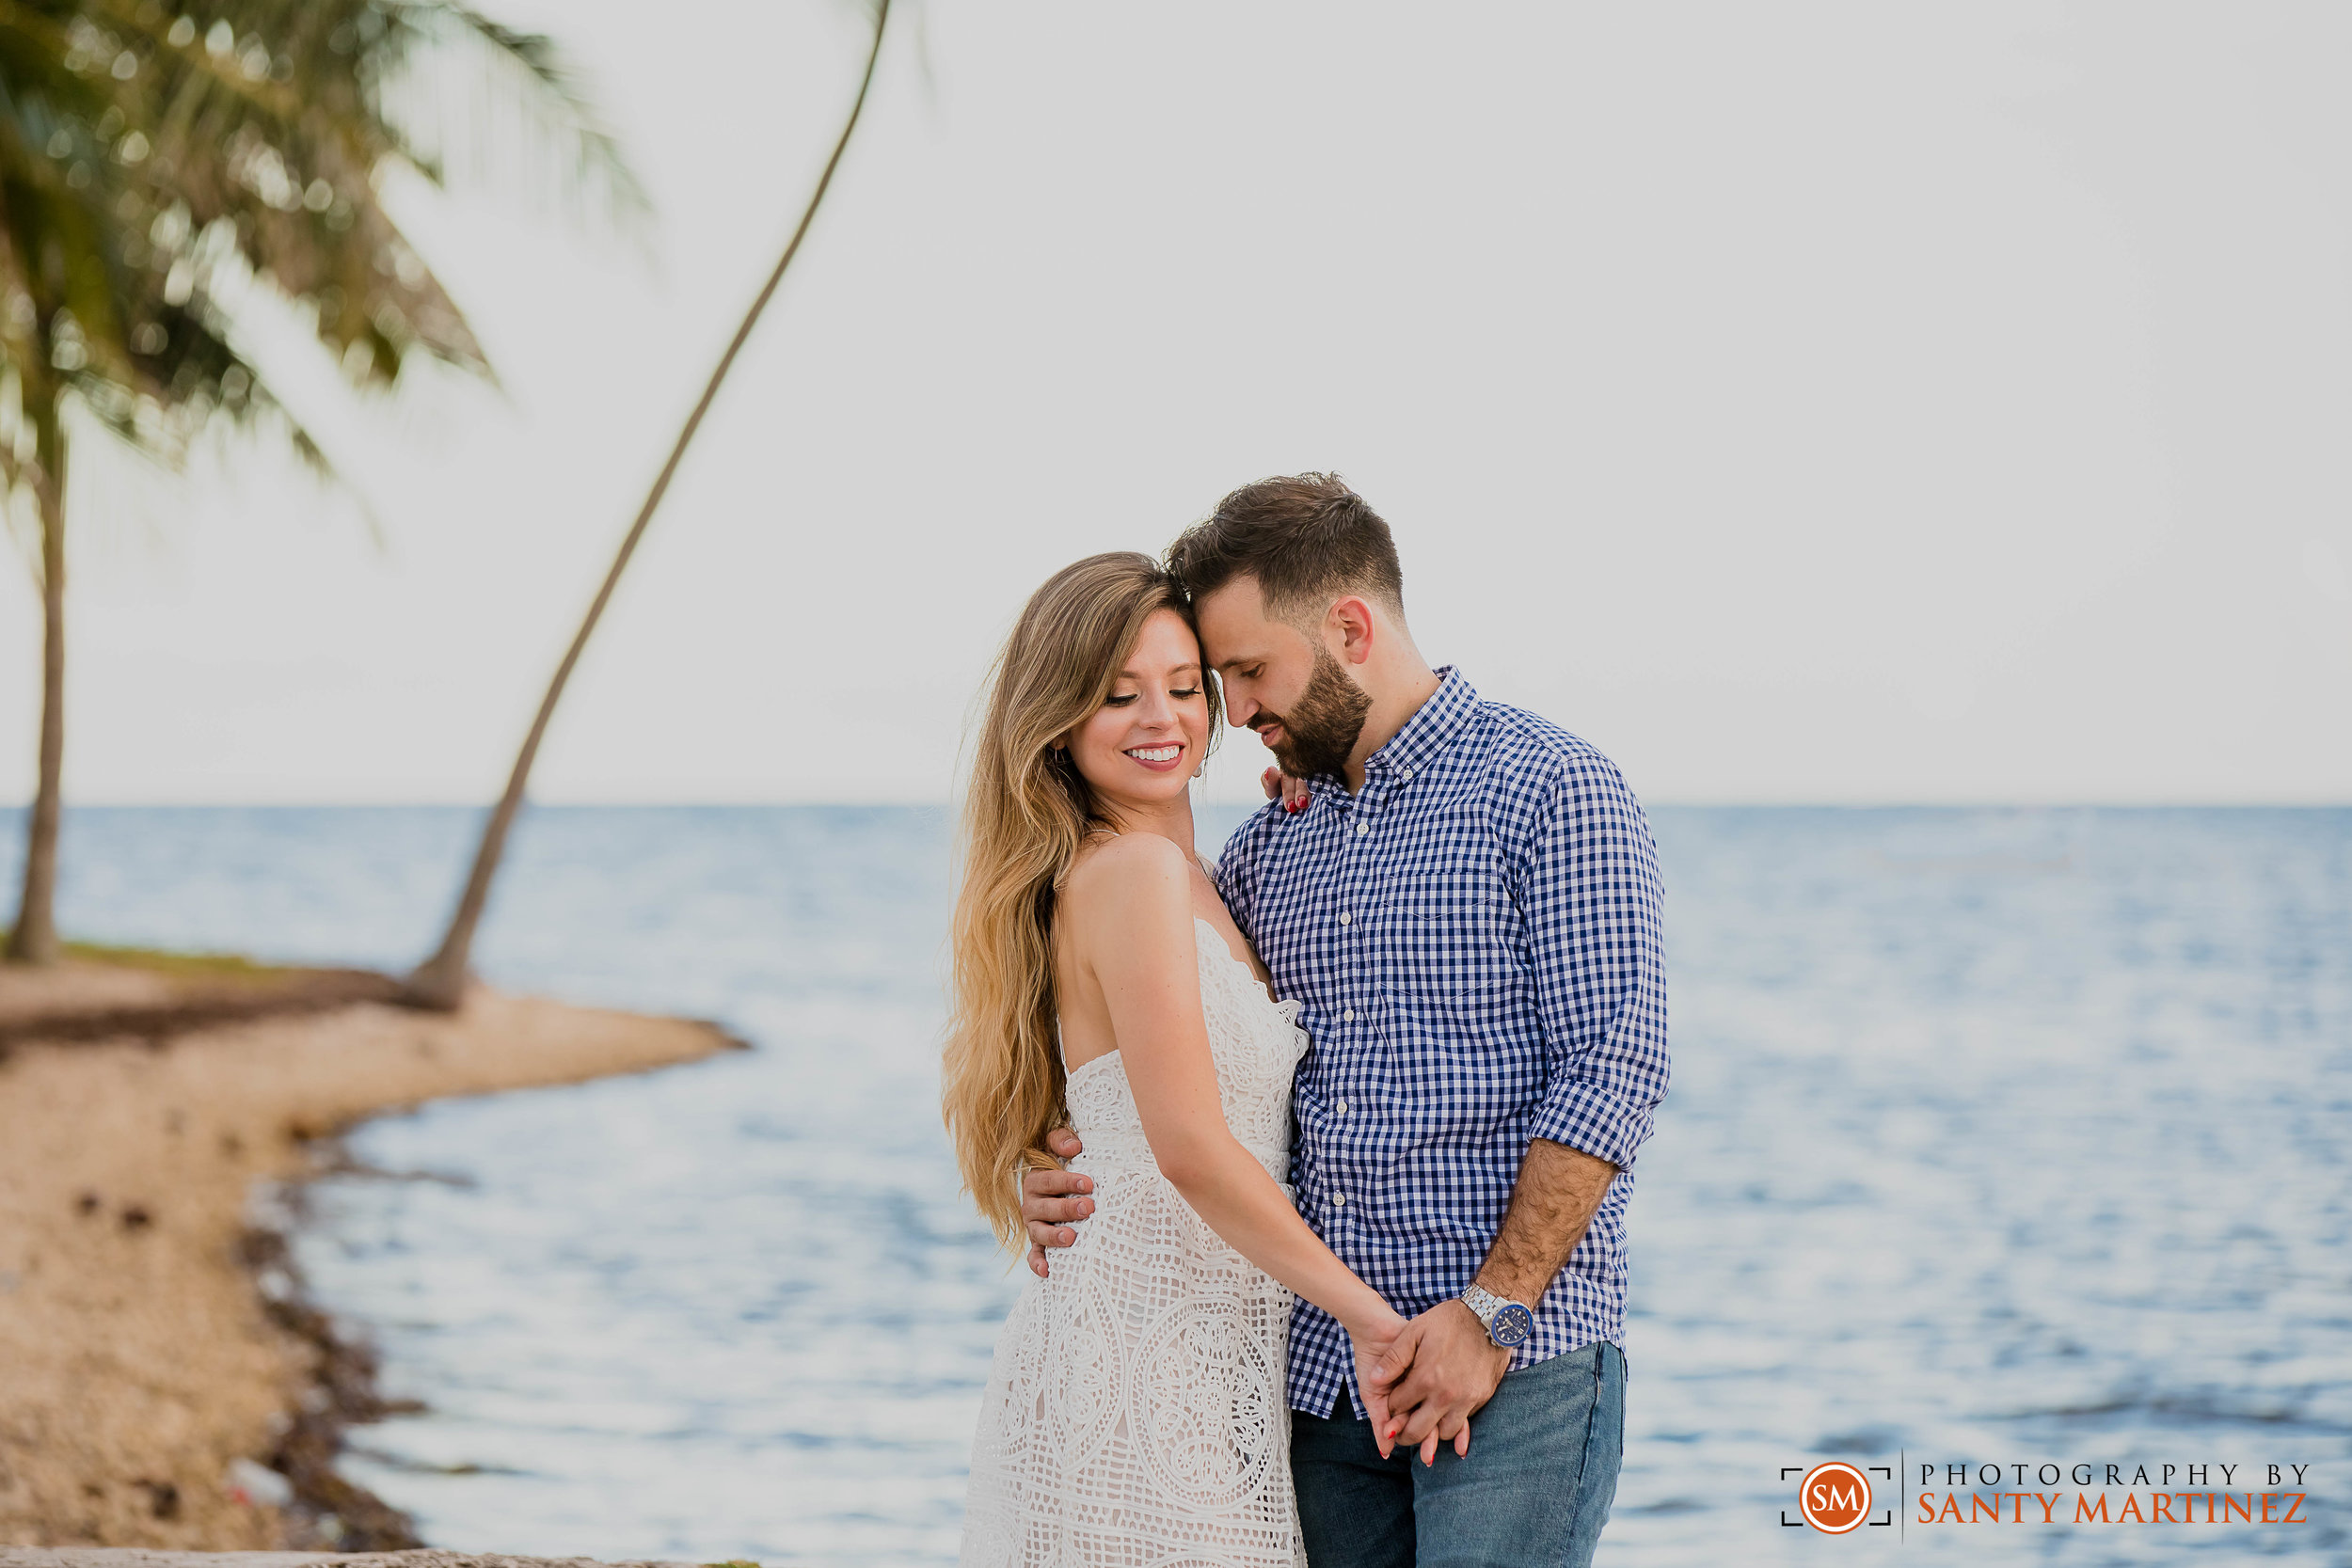 Engagement Session - Matheson Hammock Park - Santy Martinez Wedding Photographer-18.jpg